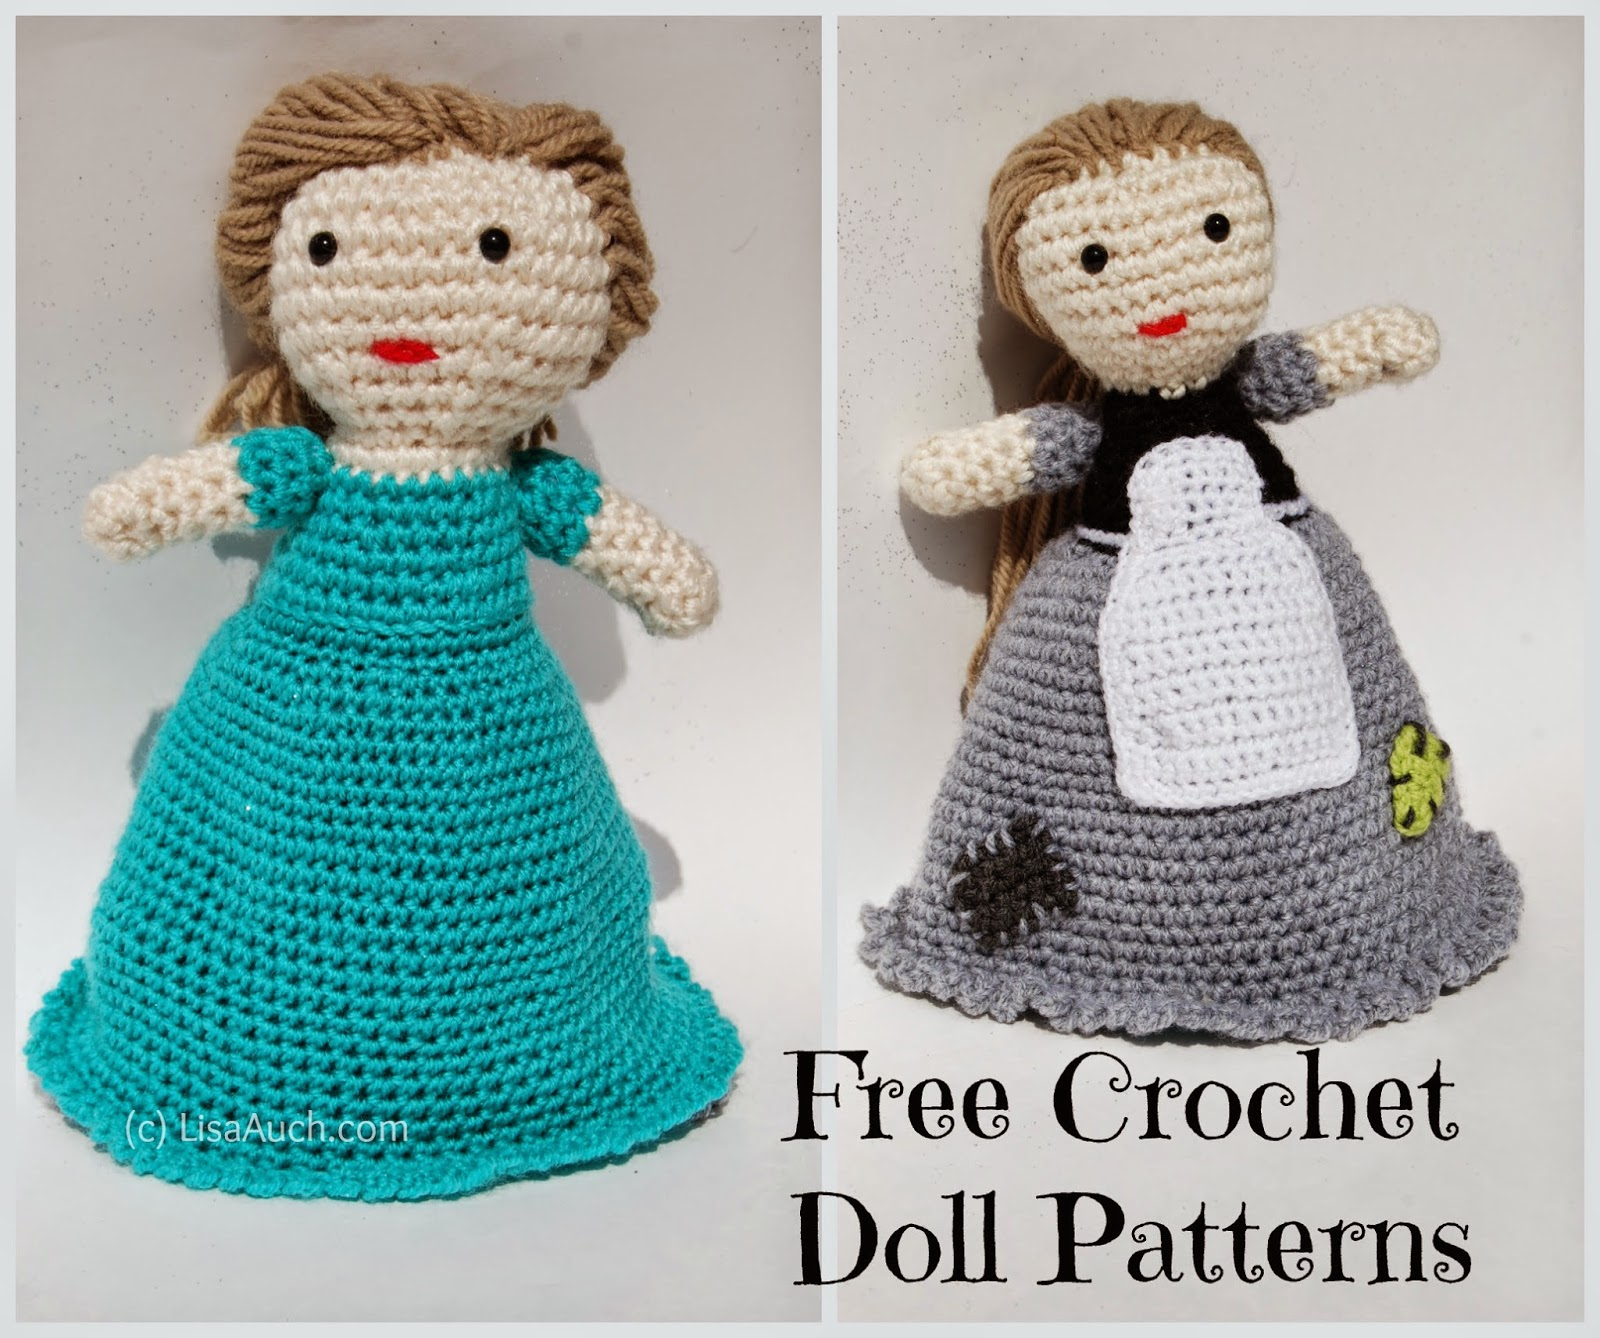 crochet doll patterns tncfnhq